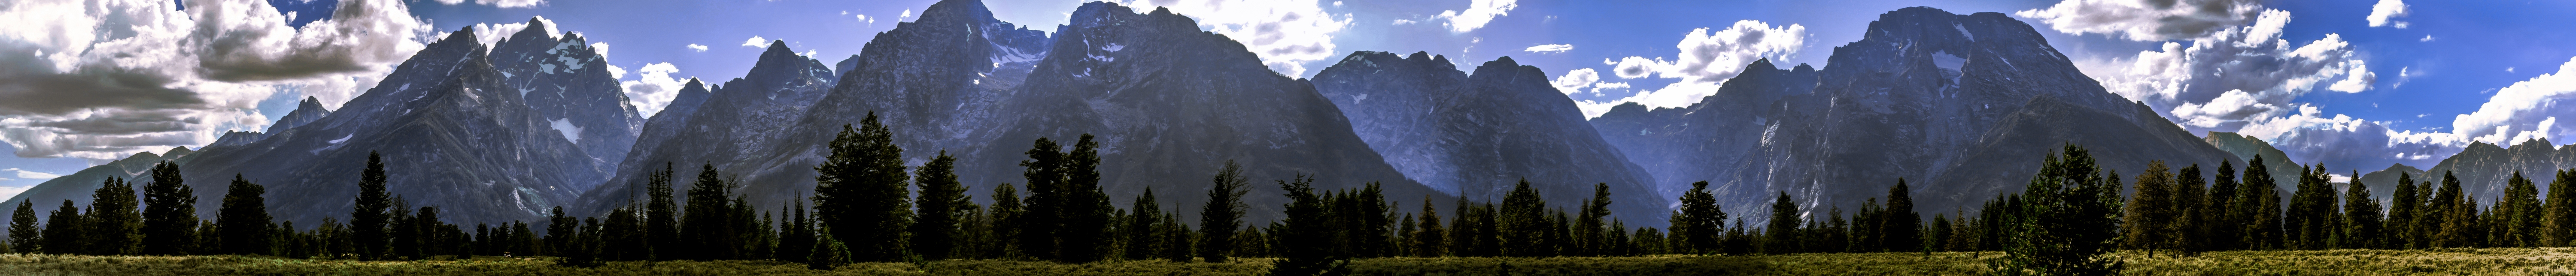 Grand Tetons Pano #4 by KRHPhotography